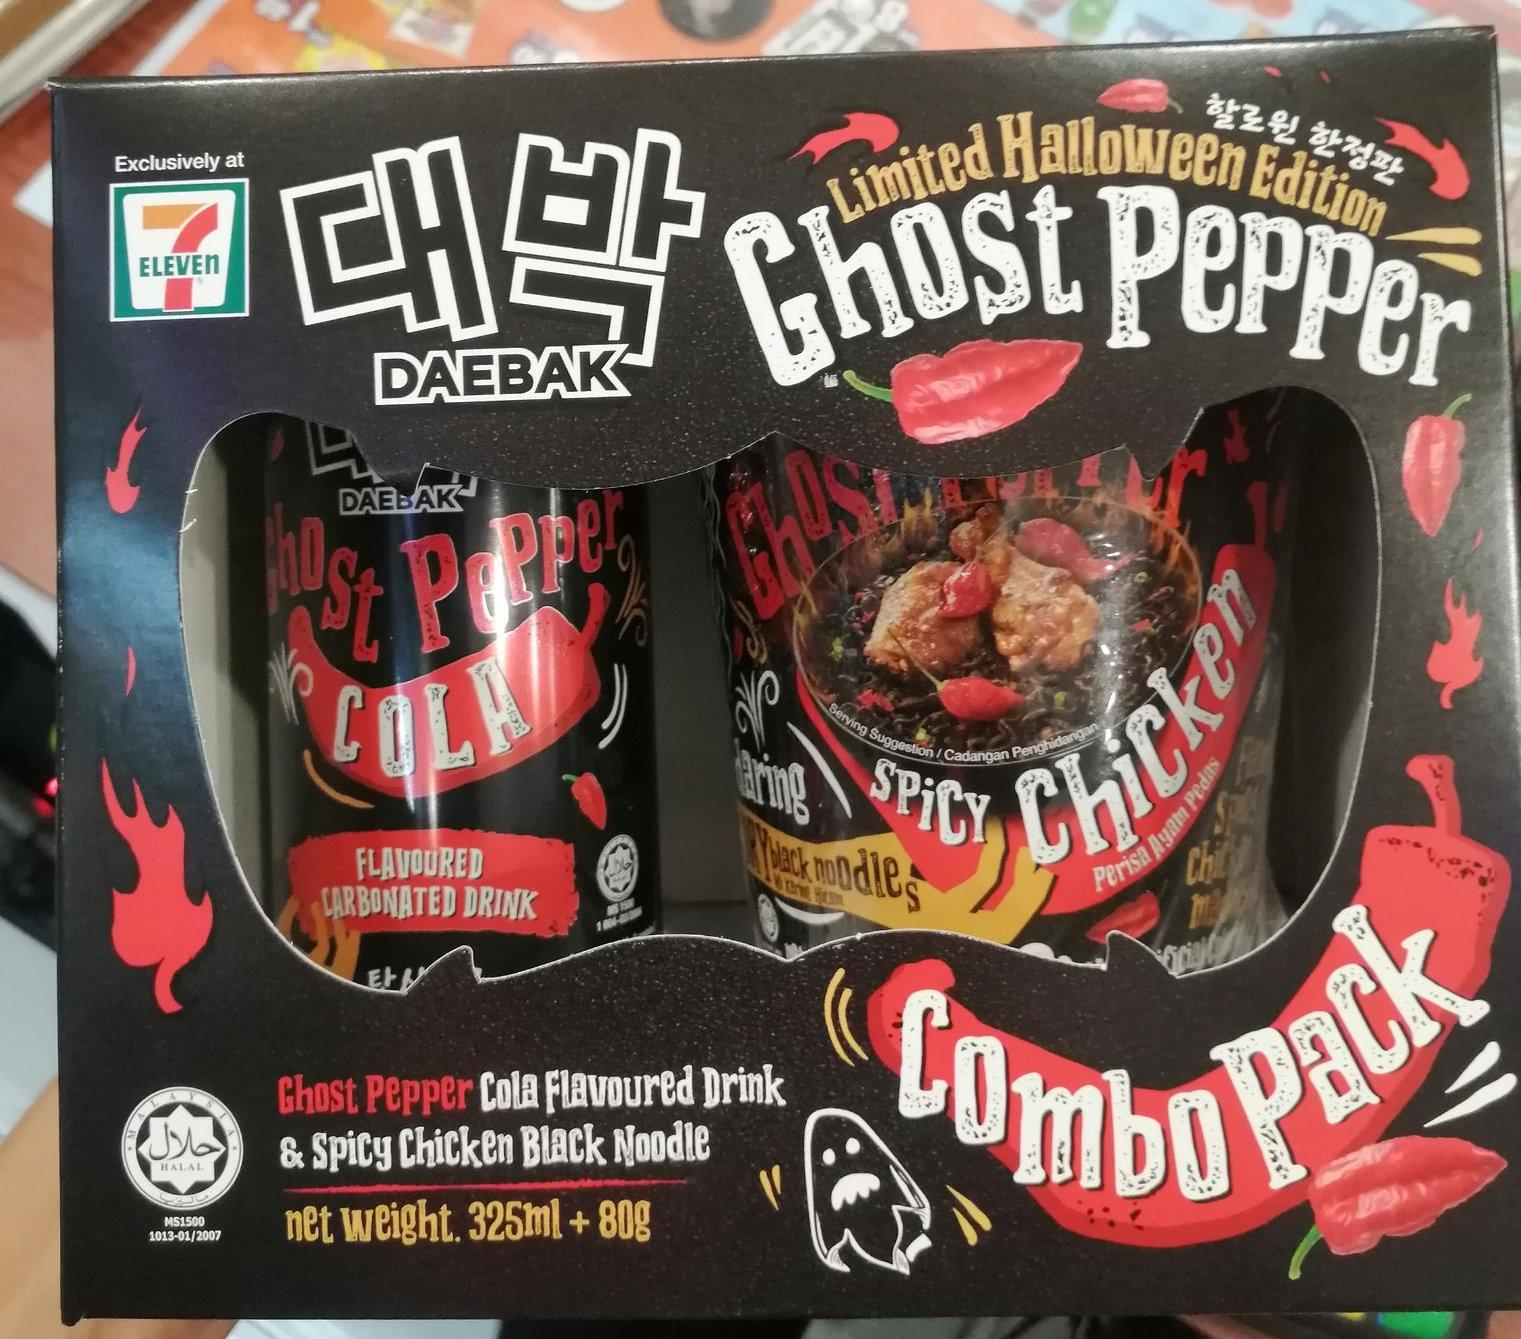 7-Eleven M'sia launches Ghost Pepper Cola, sold with instant noodles for  S$2.90 - Mothership.SG - News from Singapore, Asia and around the world